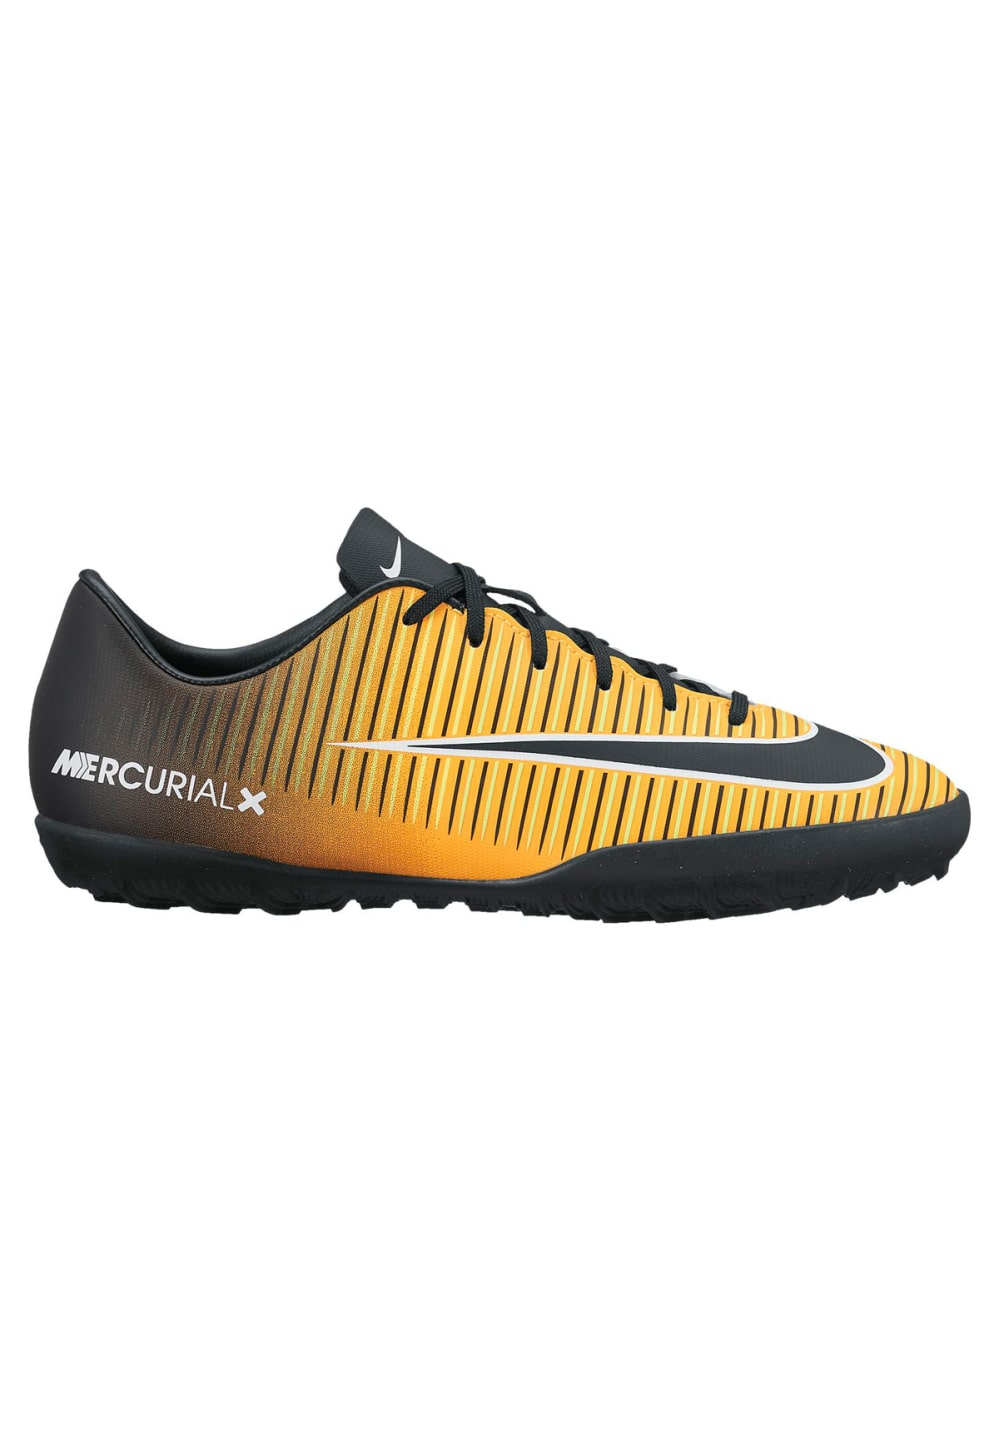 sale retailer edb40 43fd7 Nike Jr. Mercurial Vapor XI TF - Football Shoes - Yellow